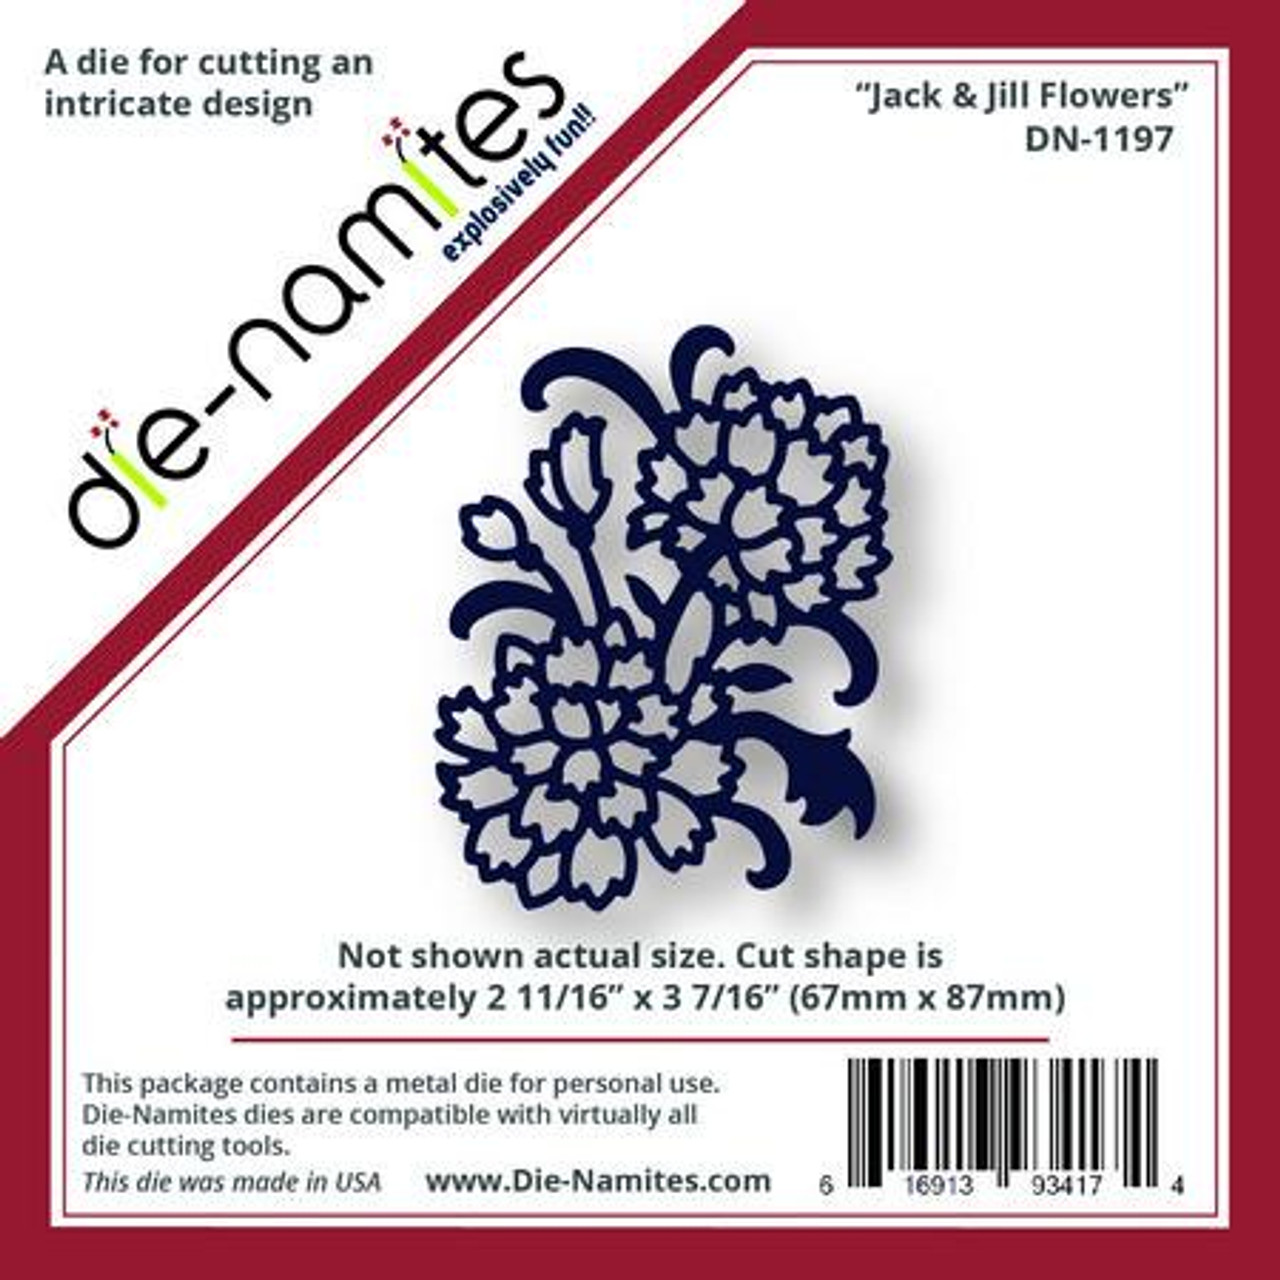 Die-Namites - Jack and Jill Flowers